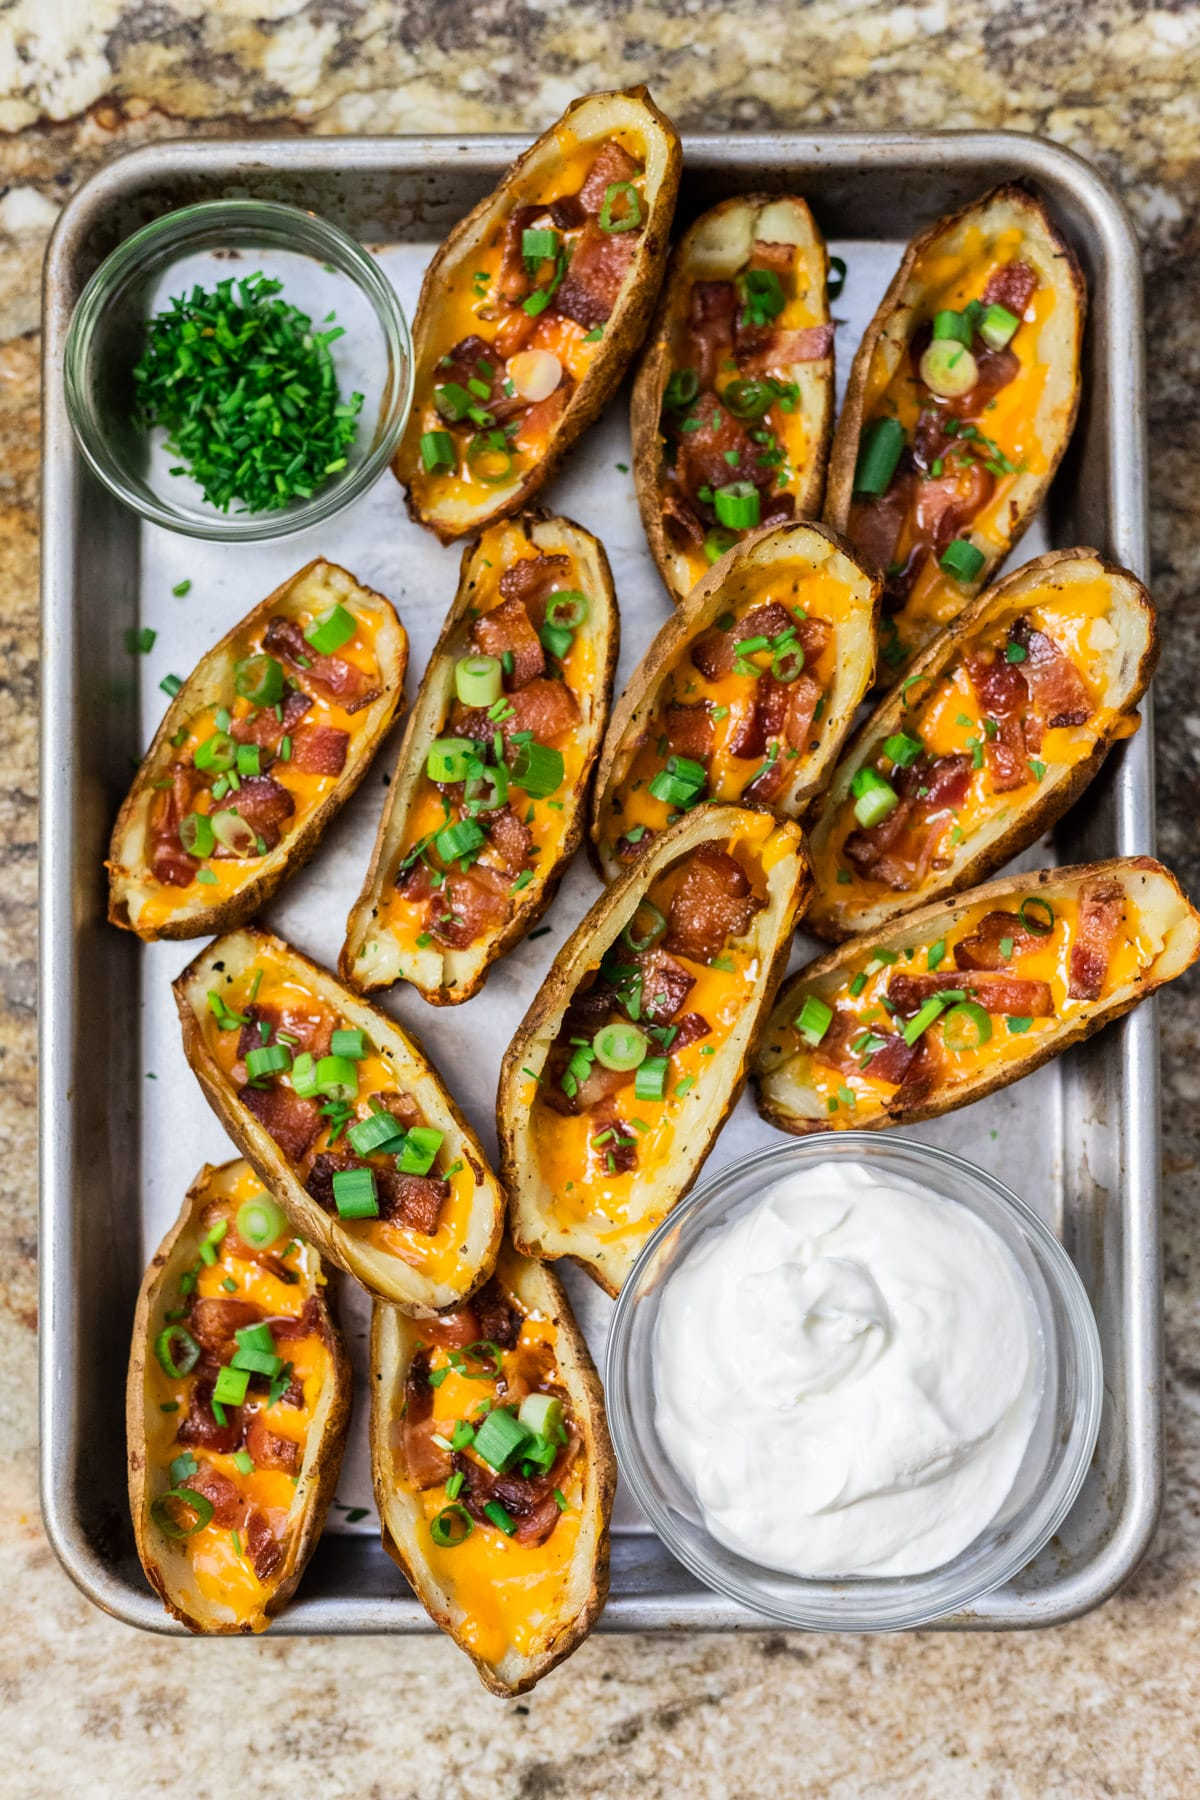 A top down view of loaded potato skins served on a tray with bowls of sour cream and chives.